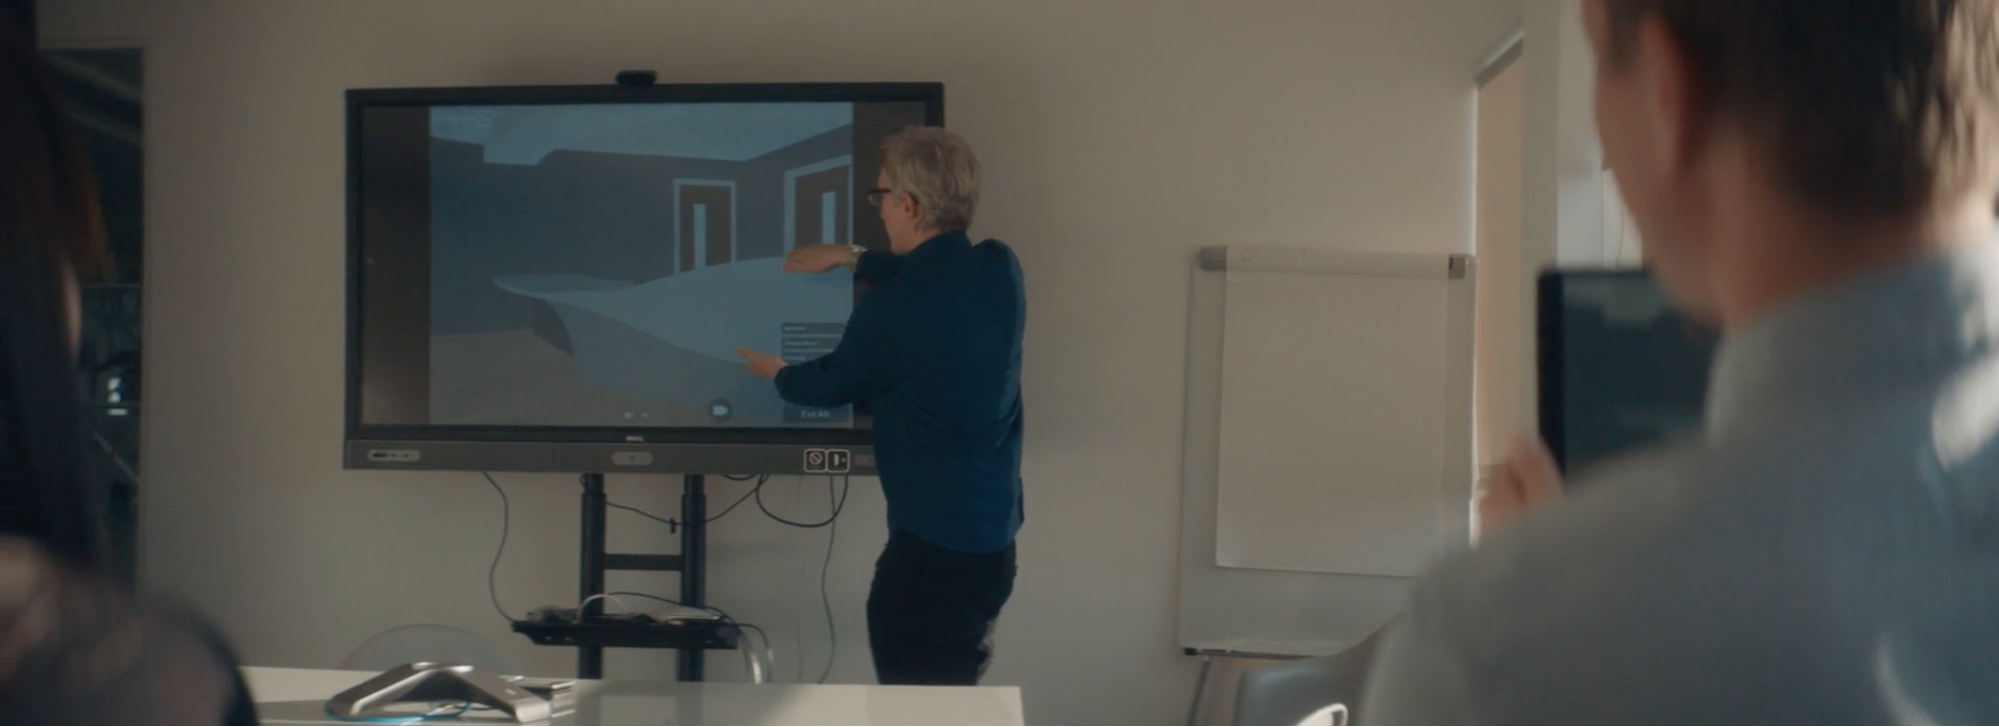 Person presenting with a big screen, the screen has images of the inside of a building, is in the background of the image and in the foreground are the shoulders of two people sitting next to each other watching the presentation.